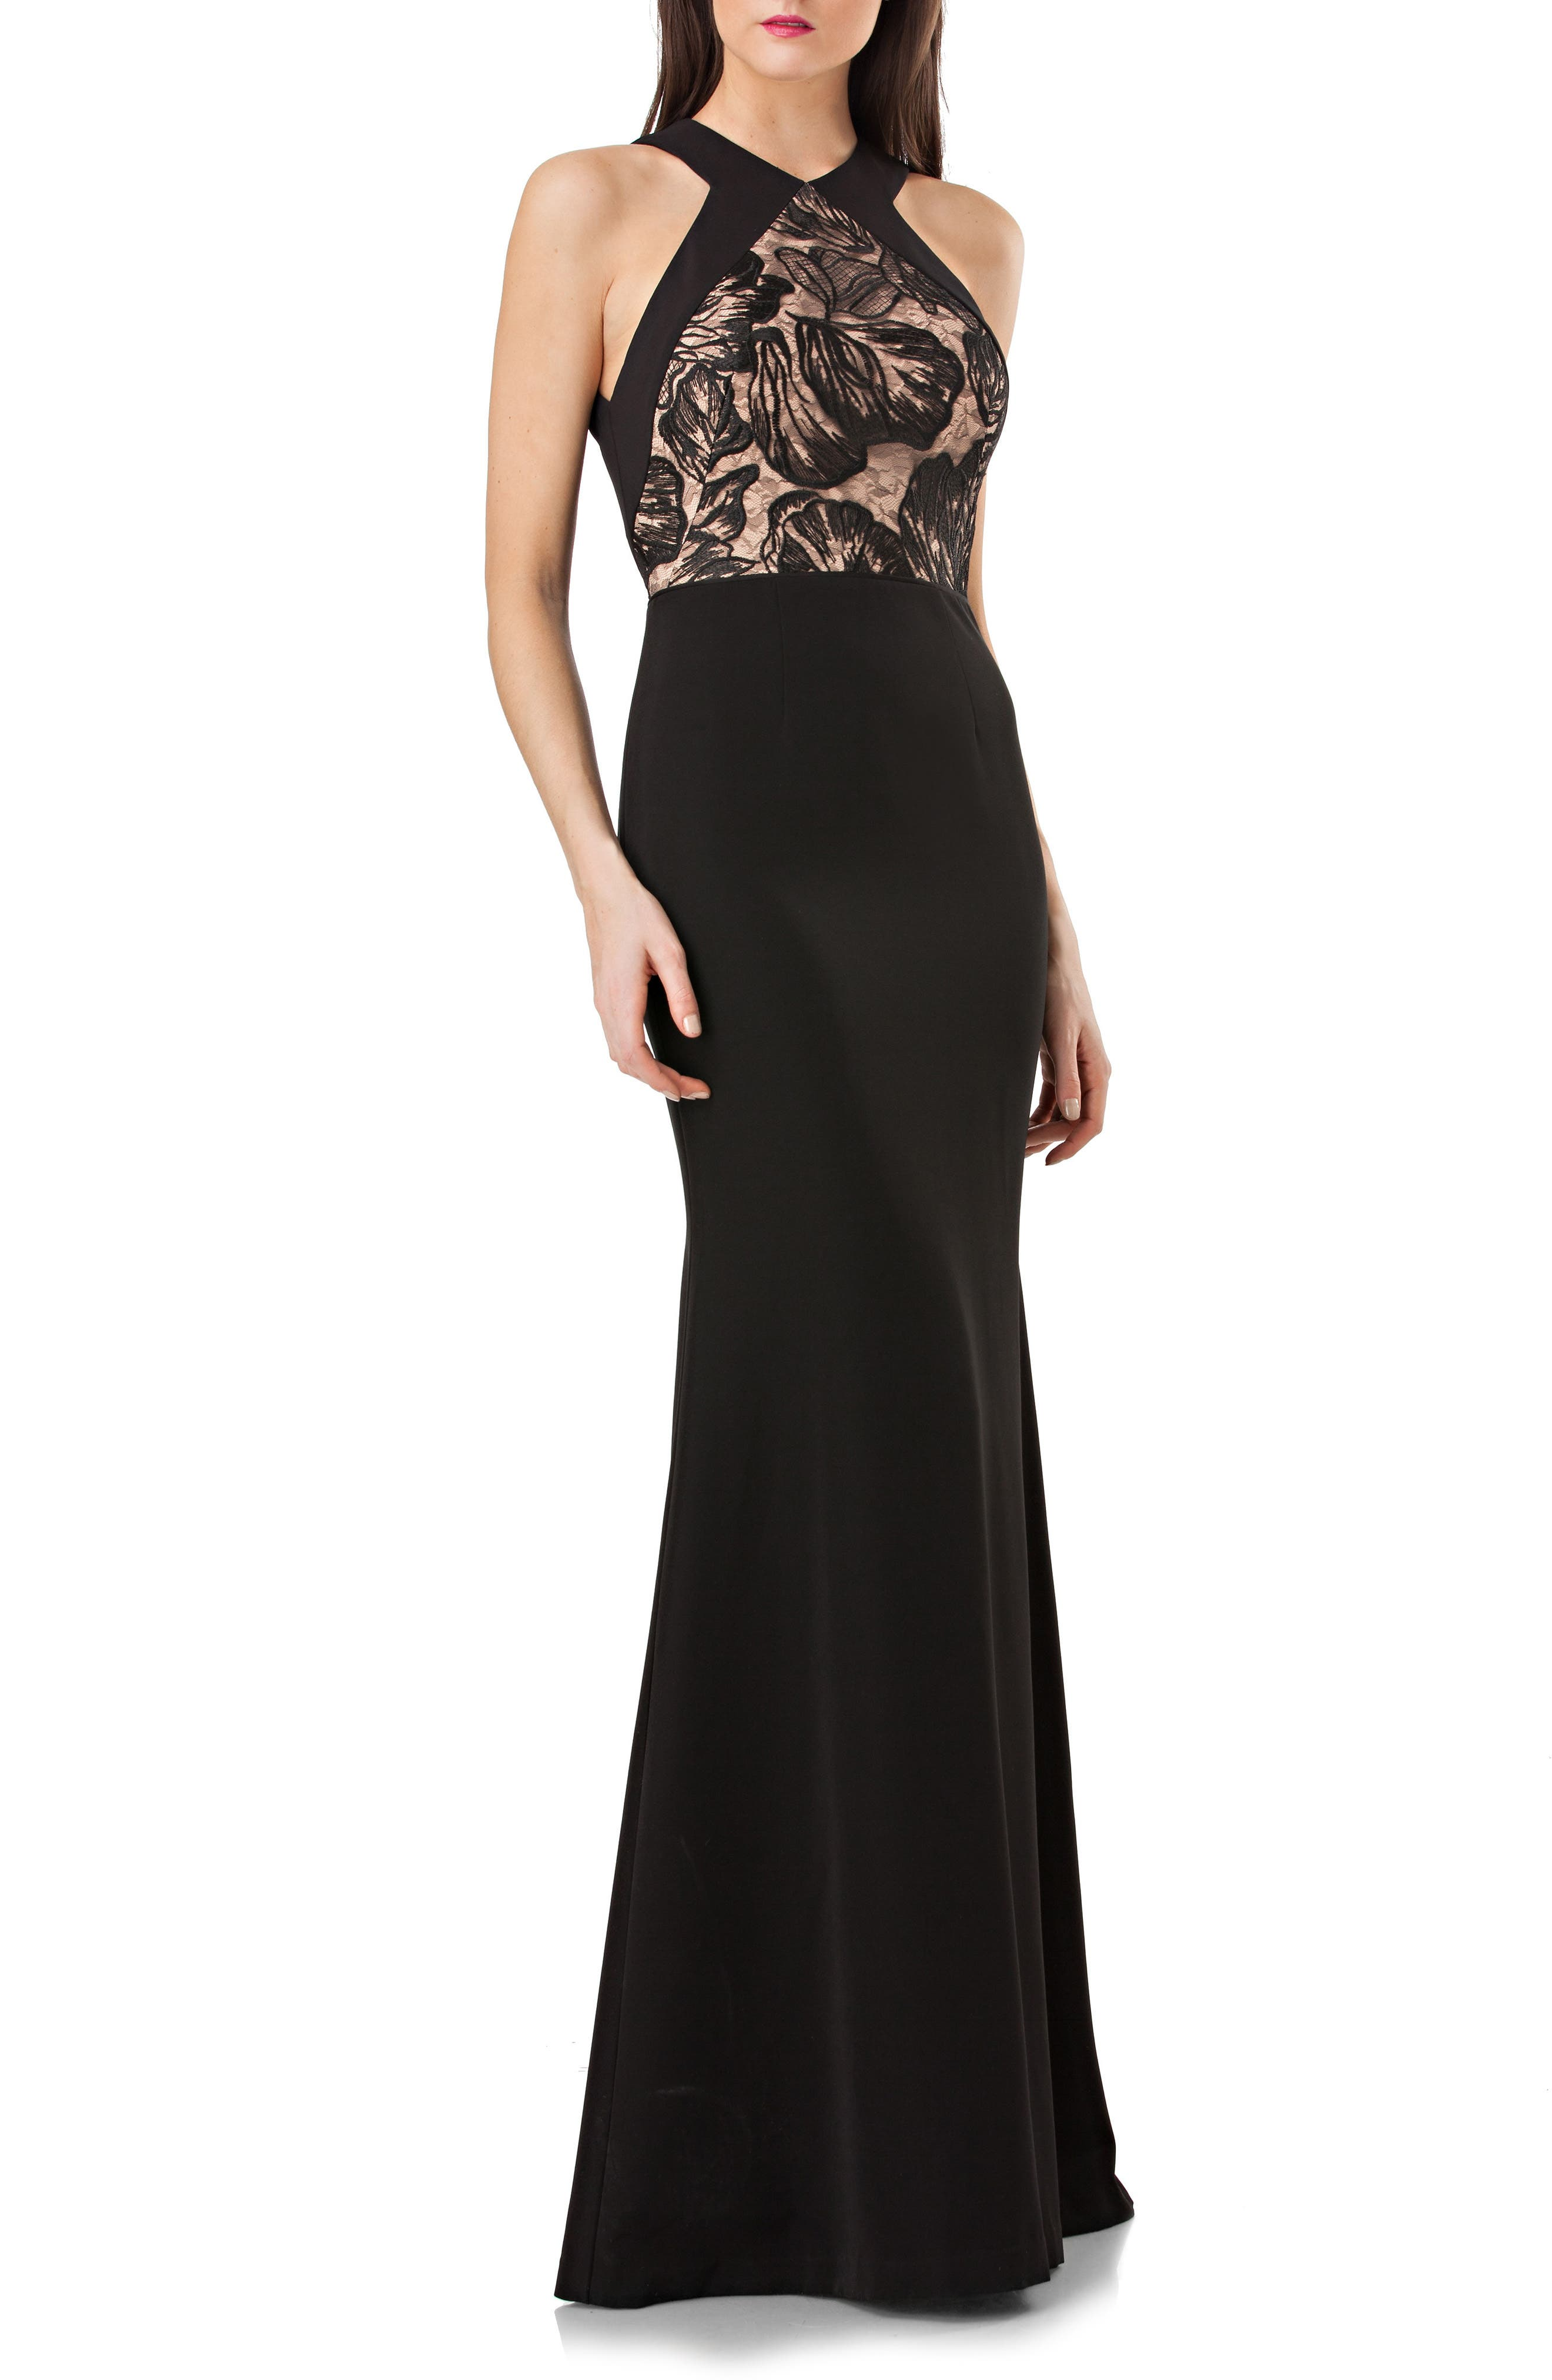 JS Collection Lace Front Halter Mermaid Gown